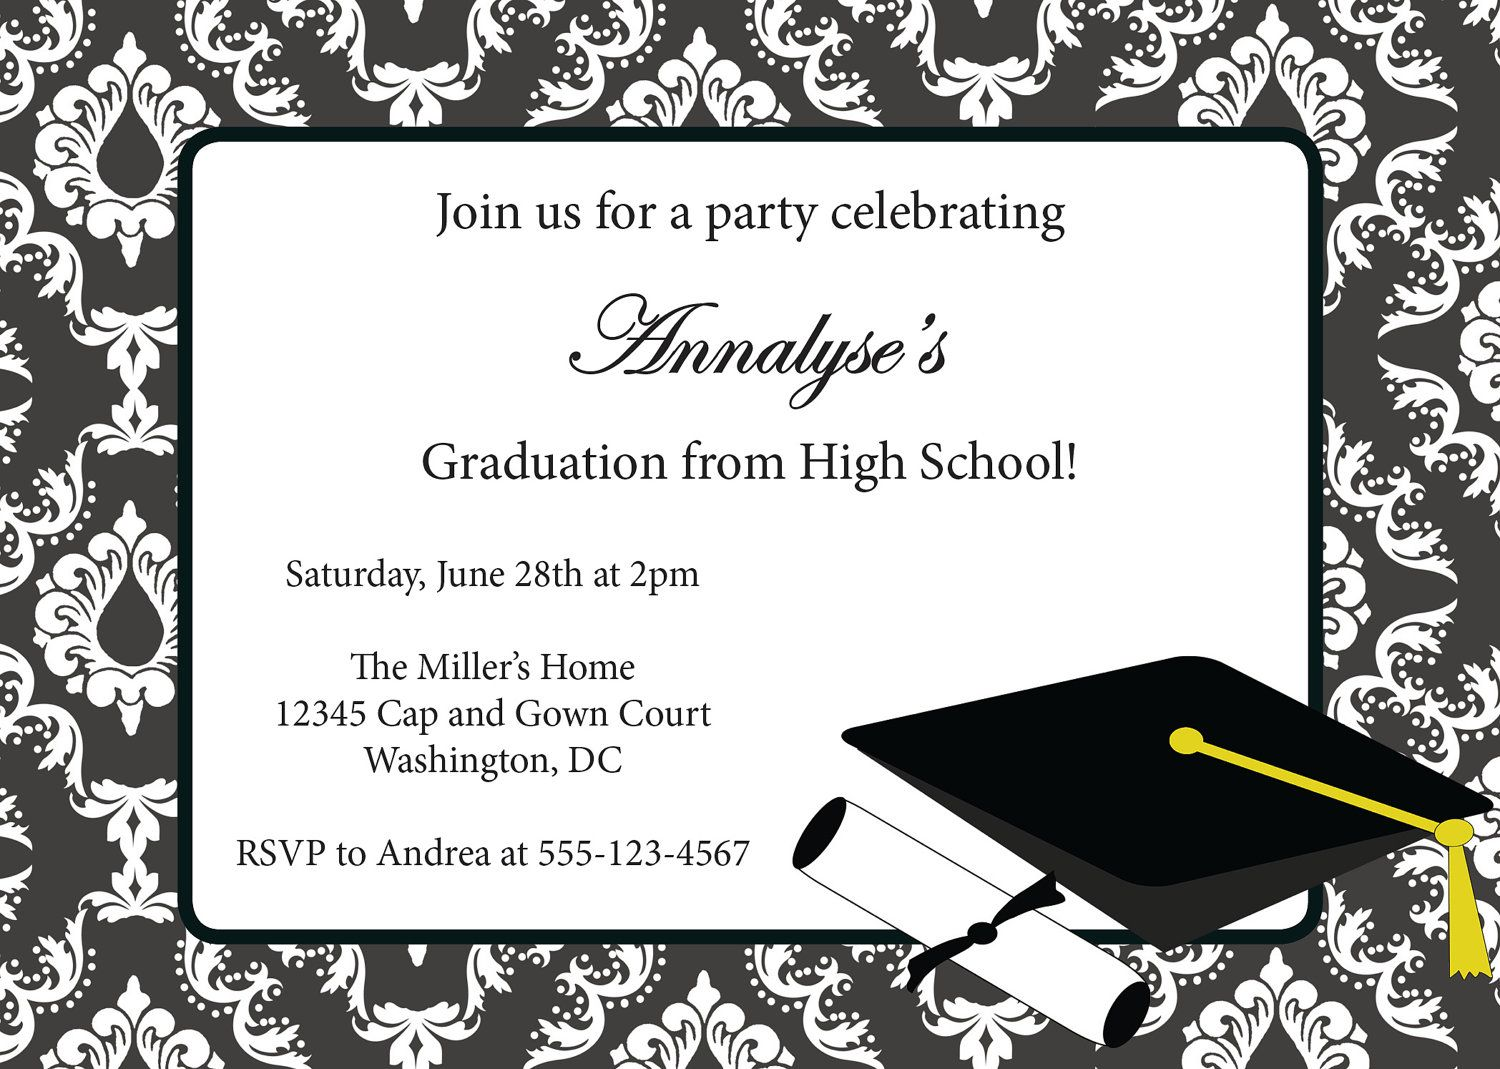 Graduation Invitation Templates Free MfJZZkLz Graduation - Party invitation template: grad party invites templates